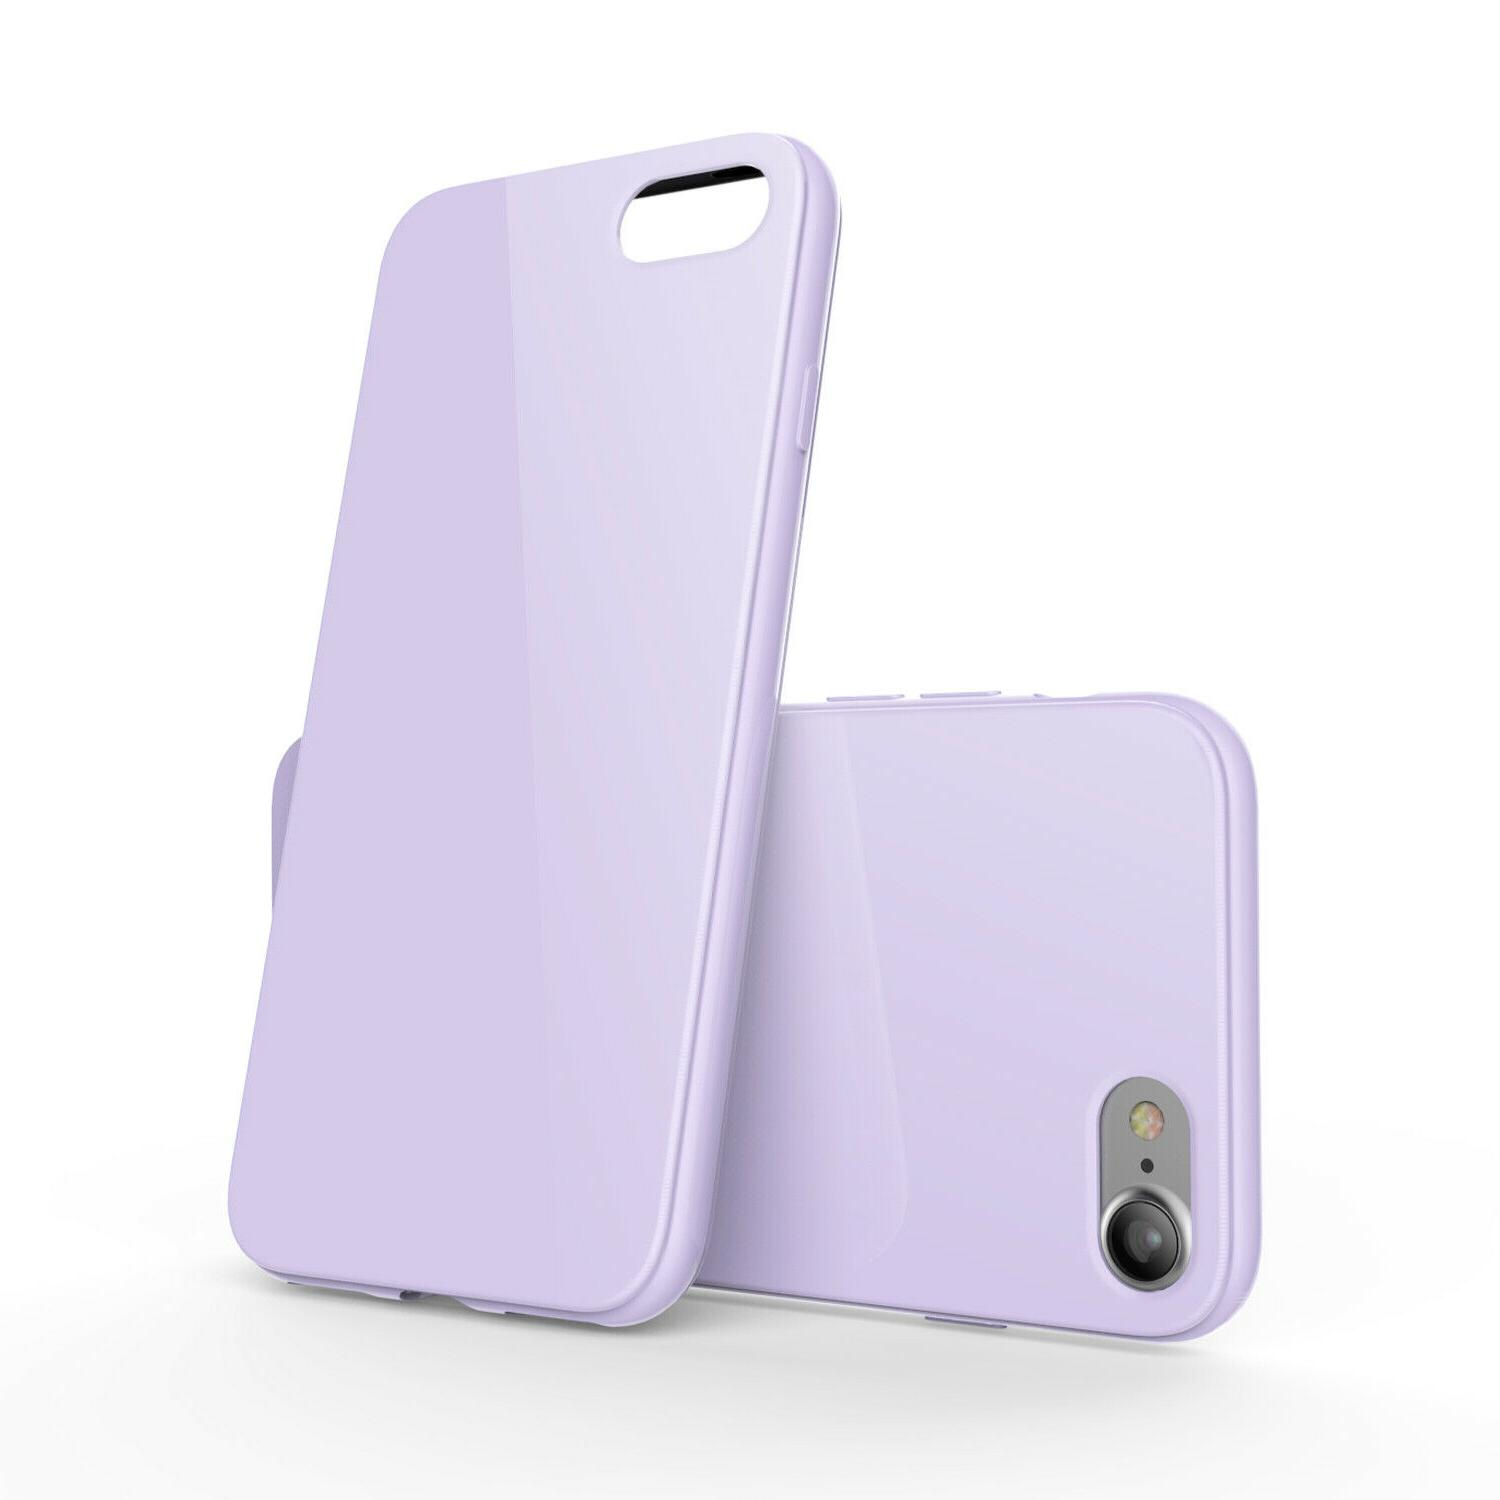 iPhone iPhone Plus Soft Shockproof Silicone Gel TPU Cover